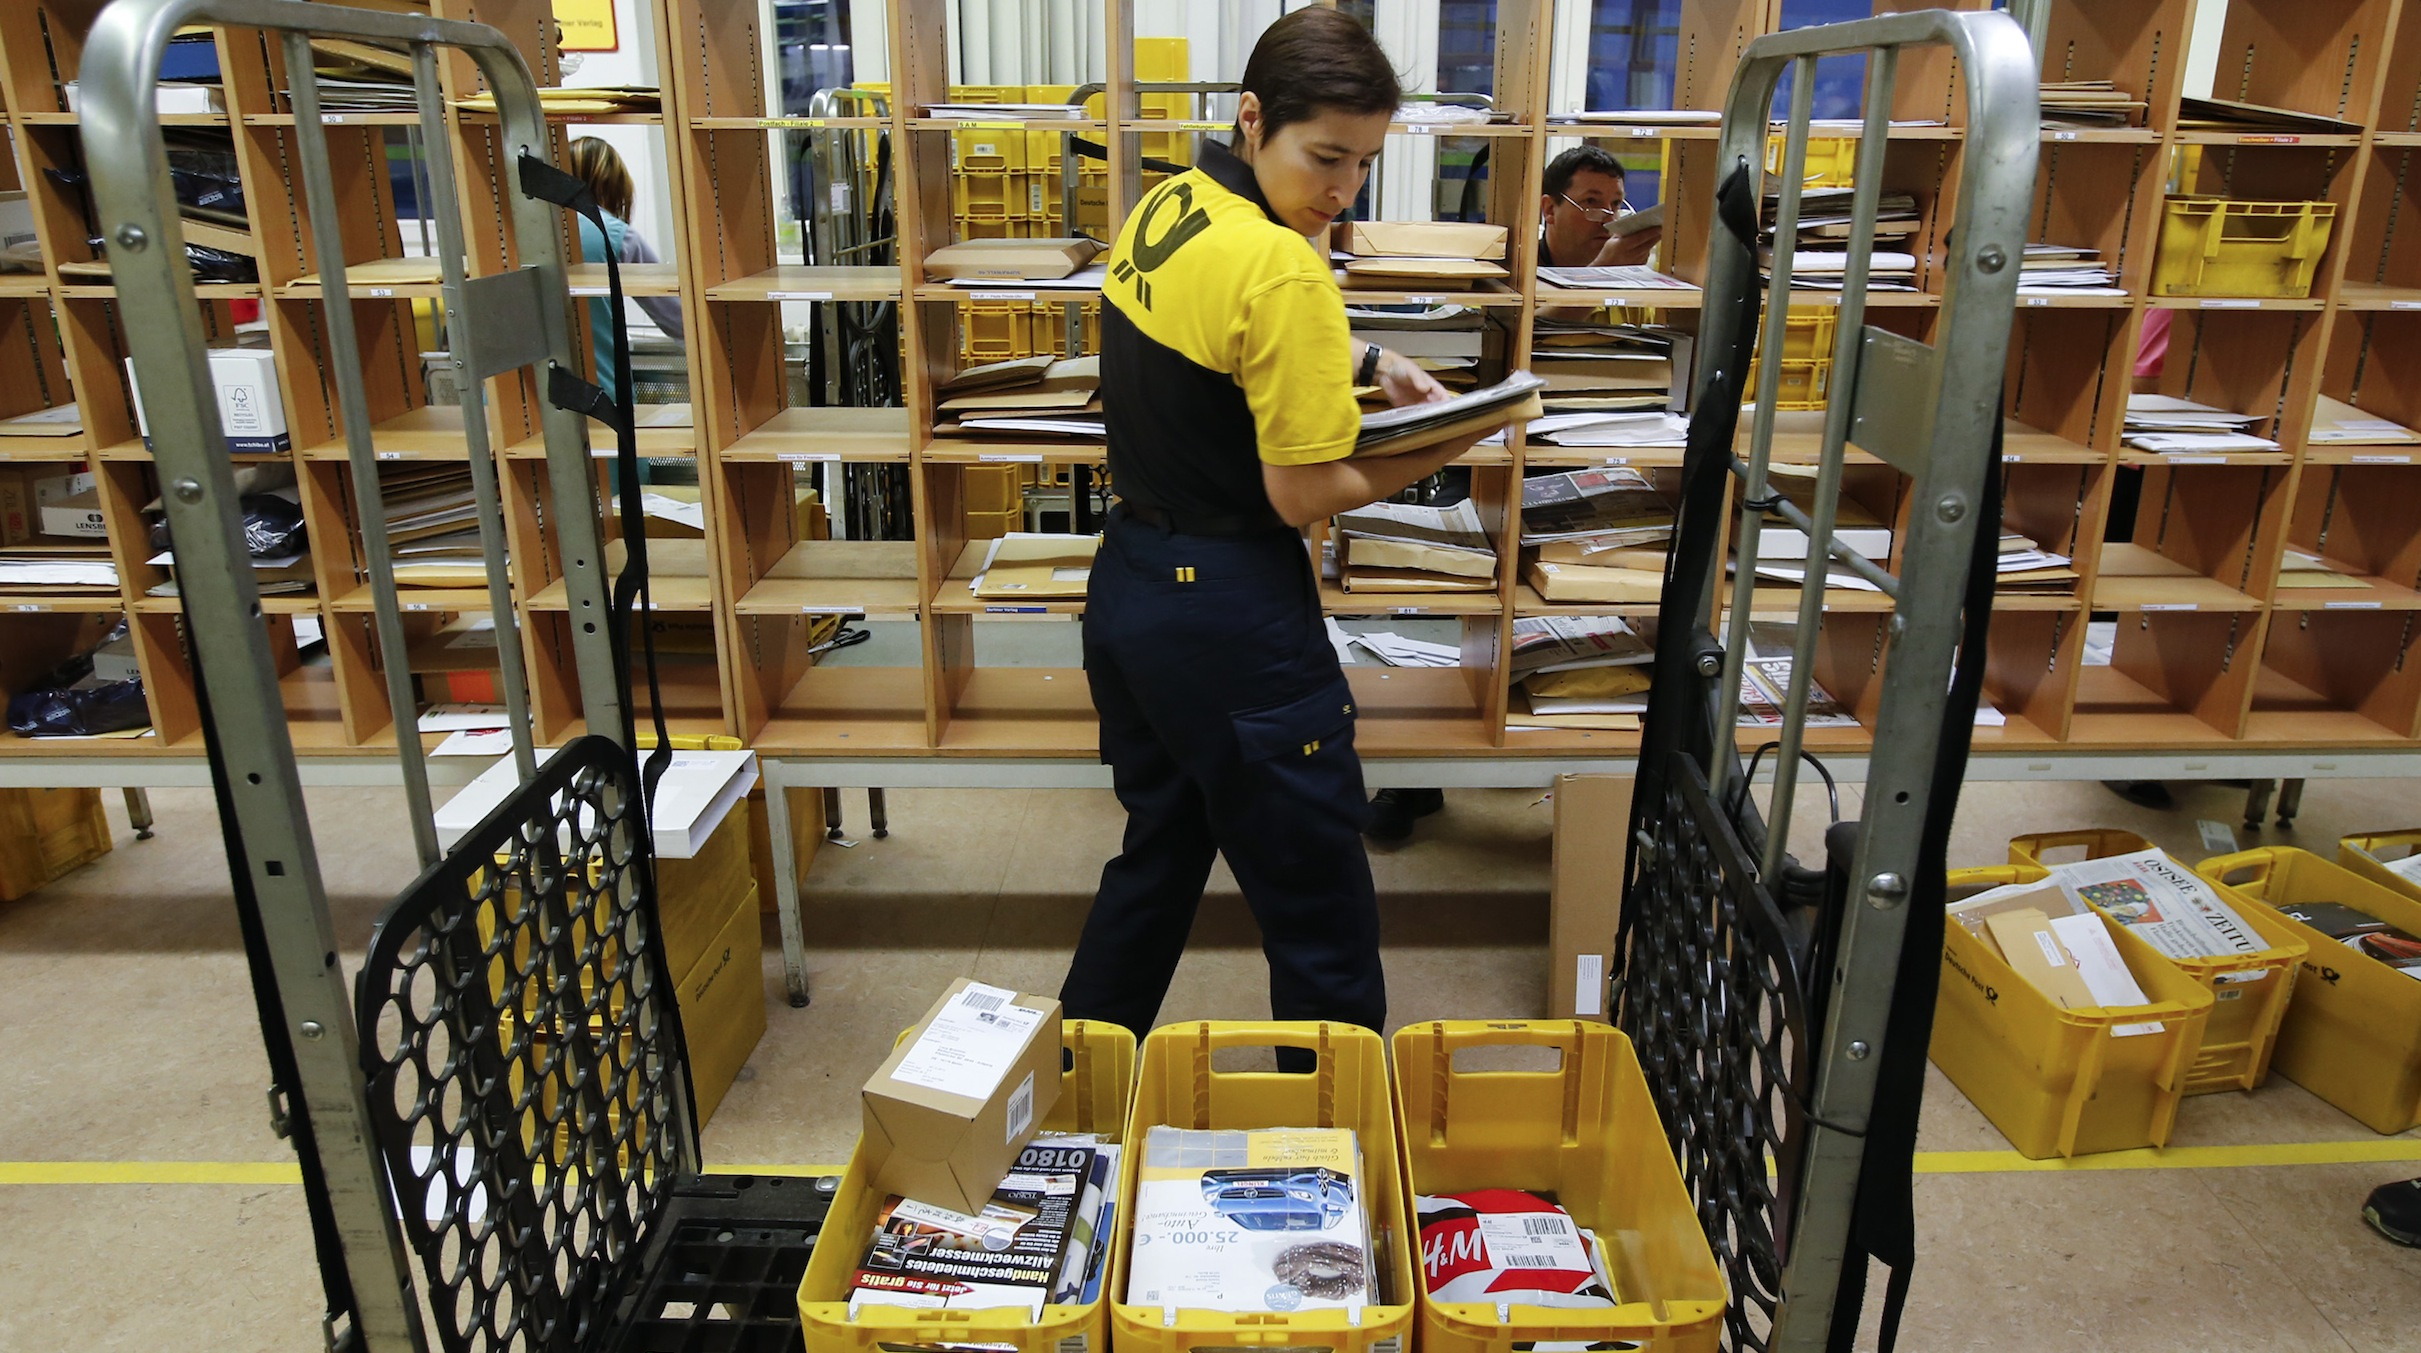 A postwoman of the German postal and logistics group Deutsche Post sorts mail at a sorting office in Berlin's Mitte district, December 4, 2013. Deutsche Post, the world's number one postal and logistics group, transported around 18 billion letters in 2012. REUTERS/Fabrizio Bensch (GERMANY  - Tags: BUSINESS EMPLOYMENT) - RTX16409